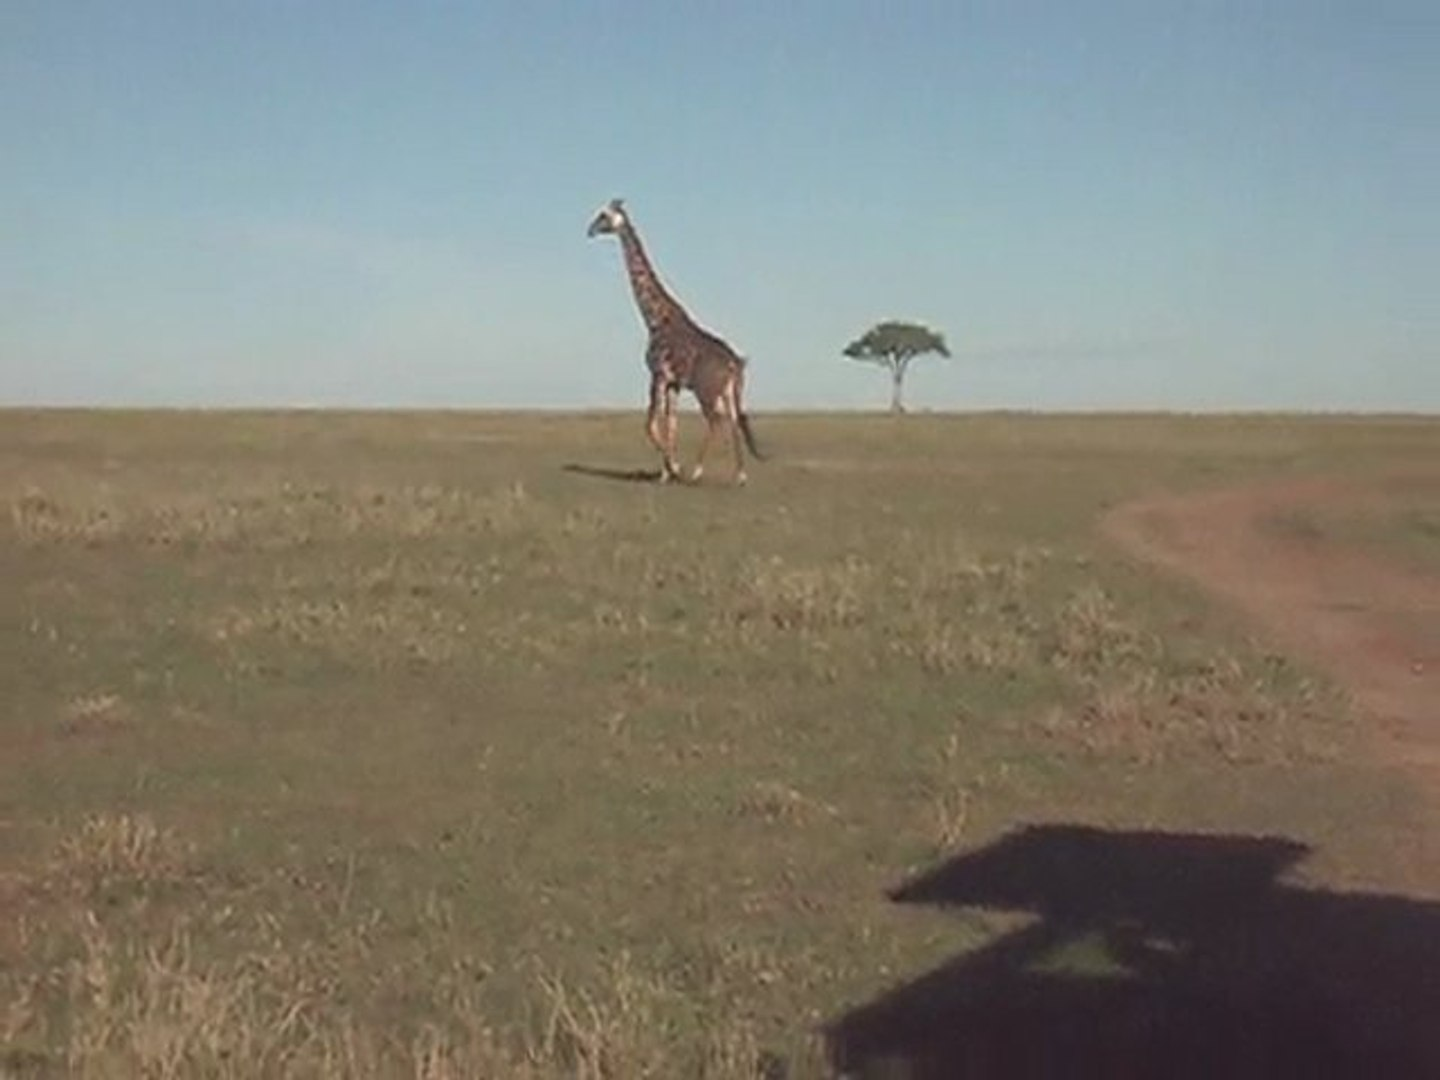 Travel to Africa with Claudious Tours and Safaris in Kenya